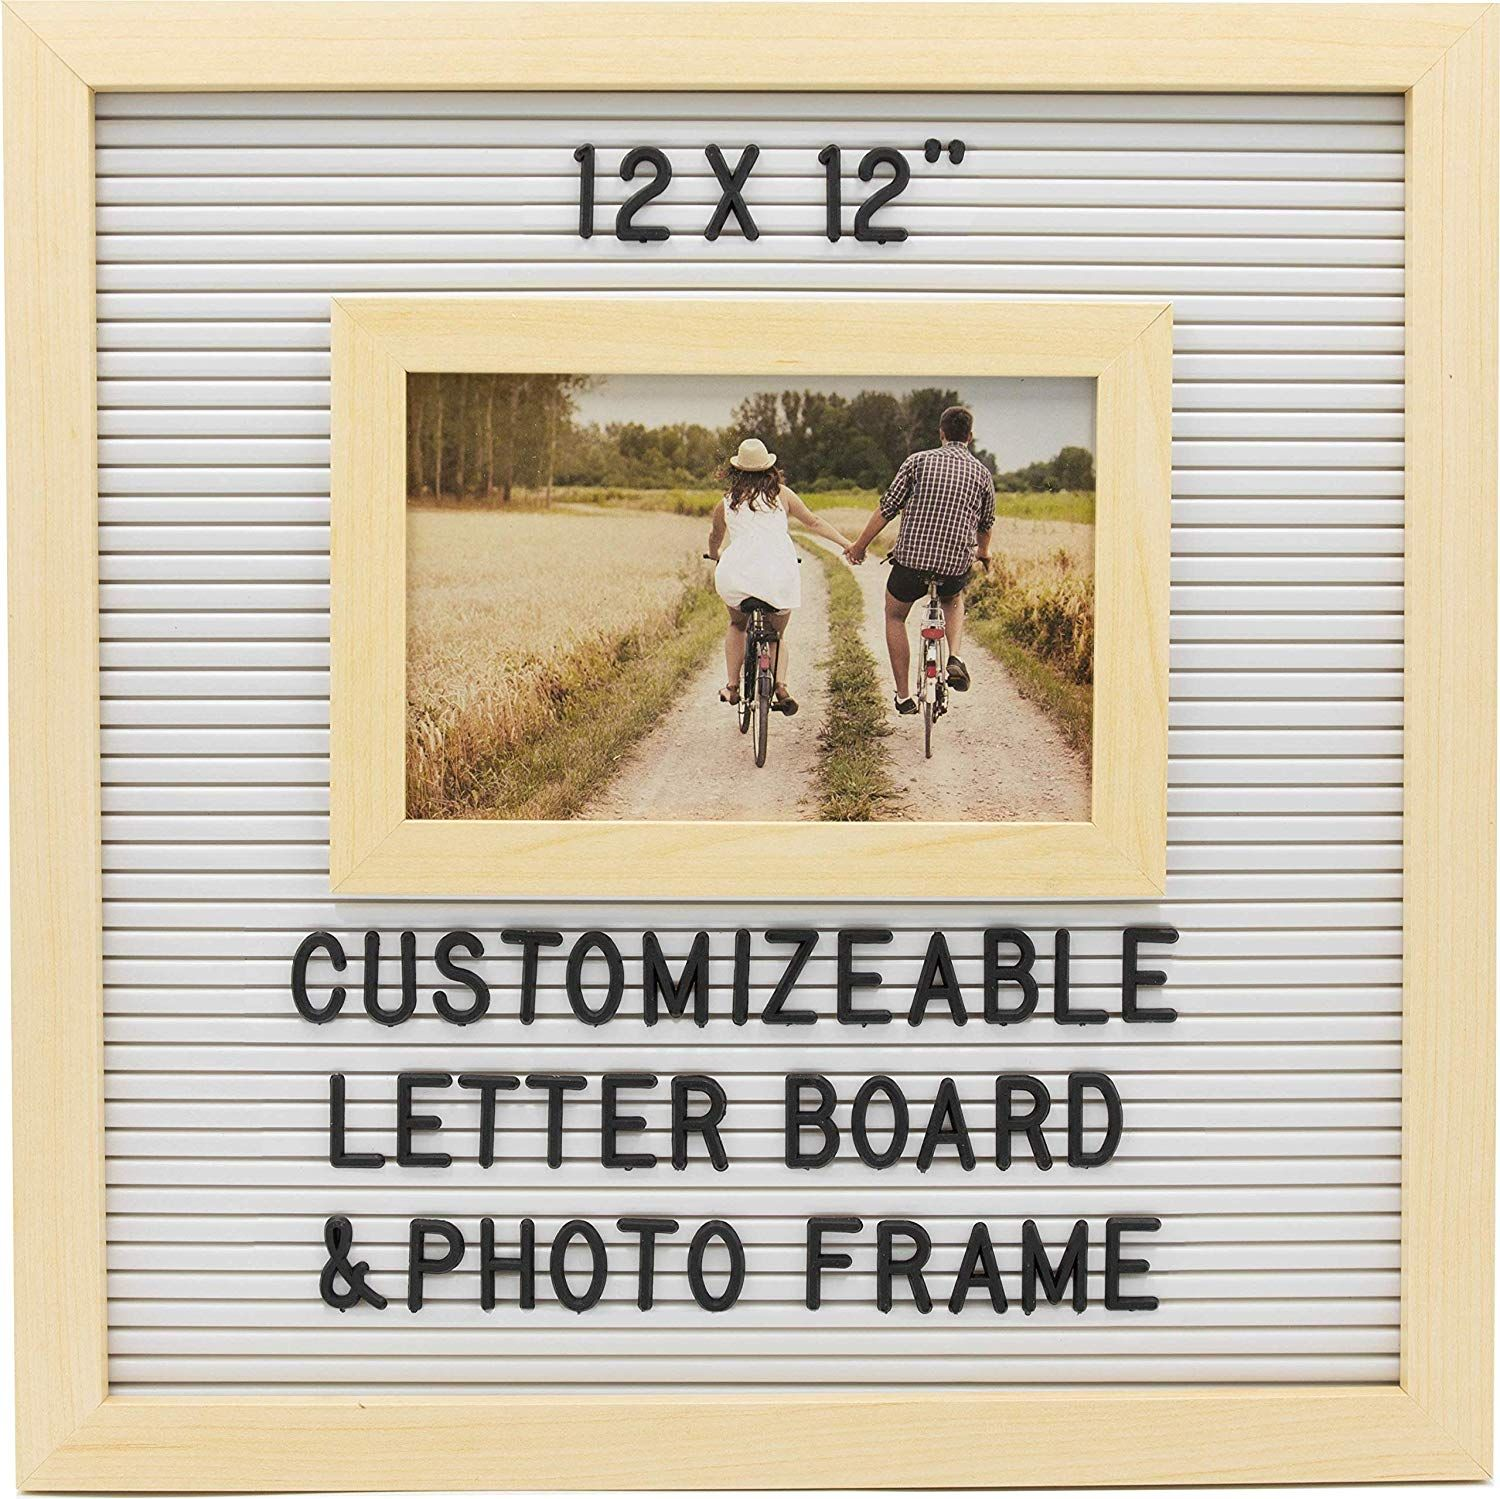 Under 15 Letterboard Photo Frame With Customizable Changable Words 12x12 Inch Includes Letters For Custom Messages Woo Photo Frame Custom Message Lettering